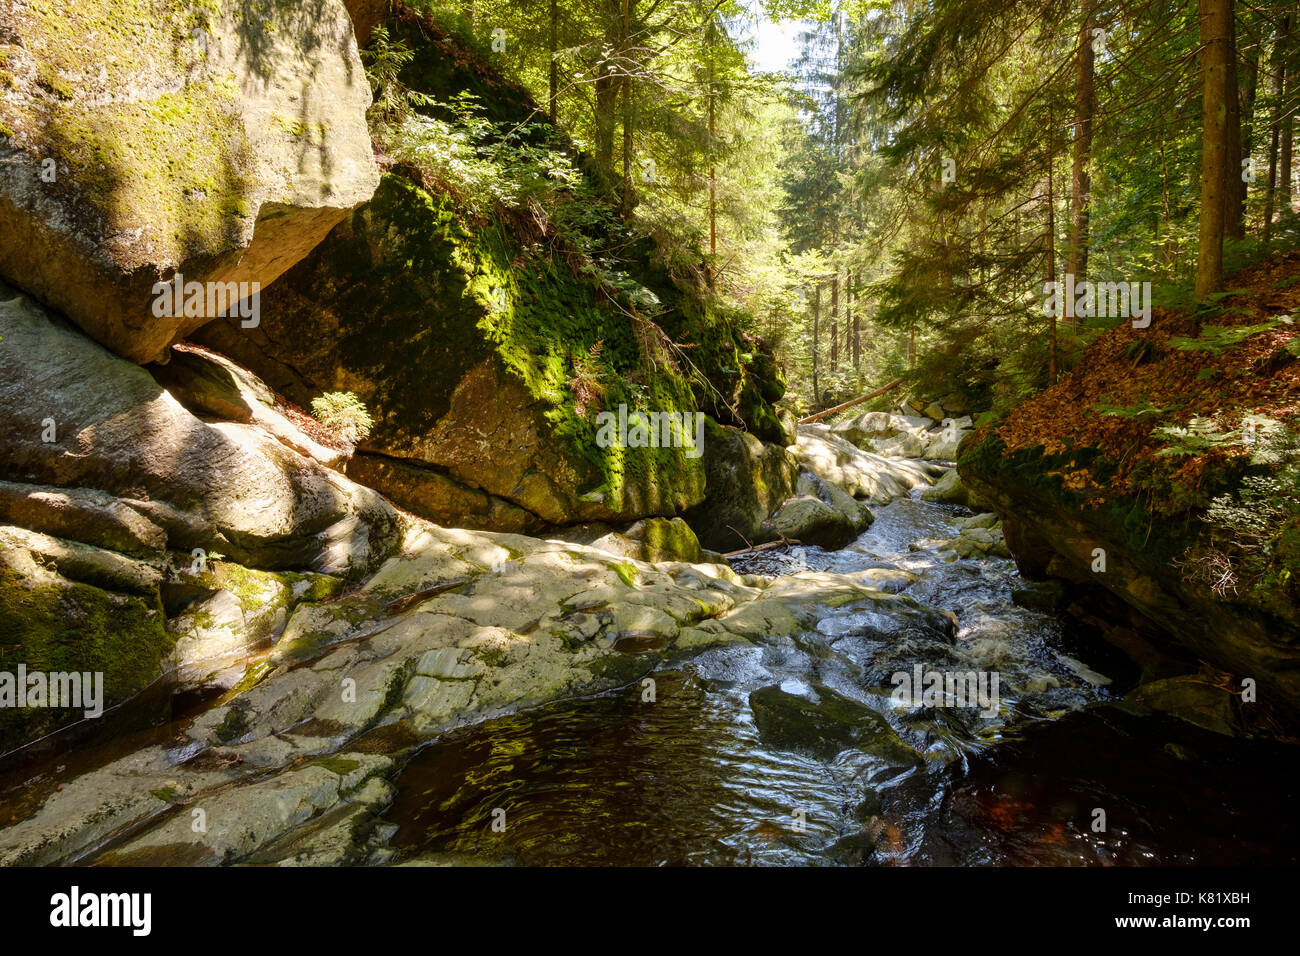 Steinklamm, Große Ohe, Spiegelau, Bavarian Forest, Lower Bavaria, Bavaria, Germany - Stock Image